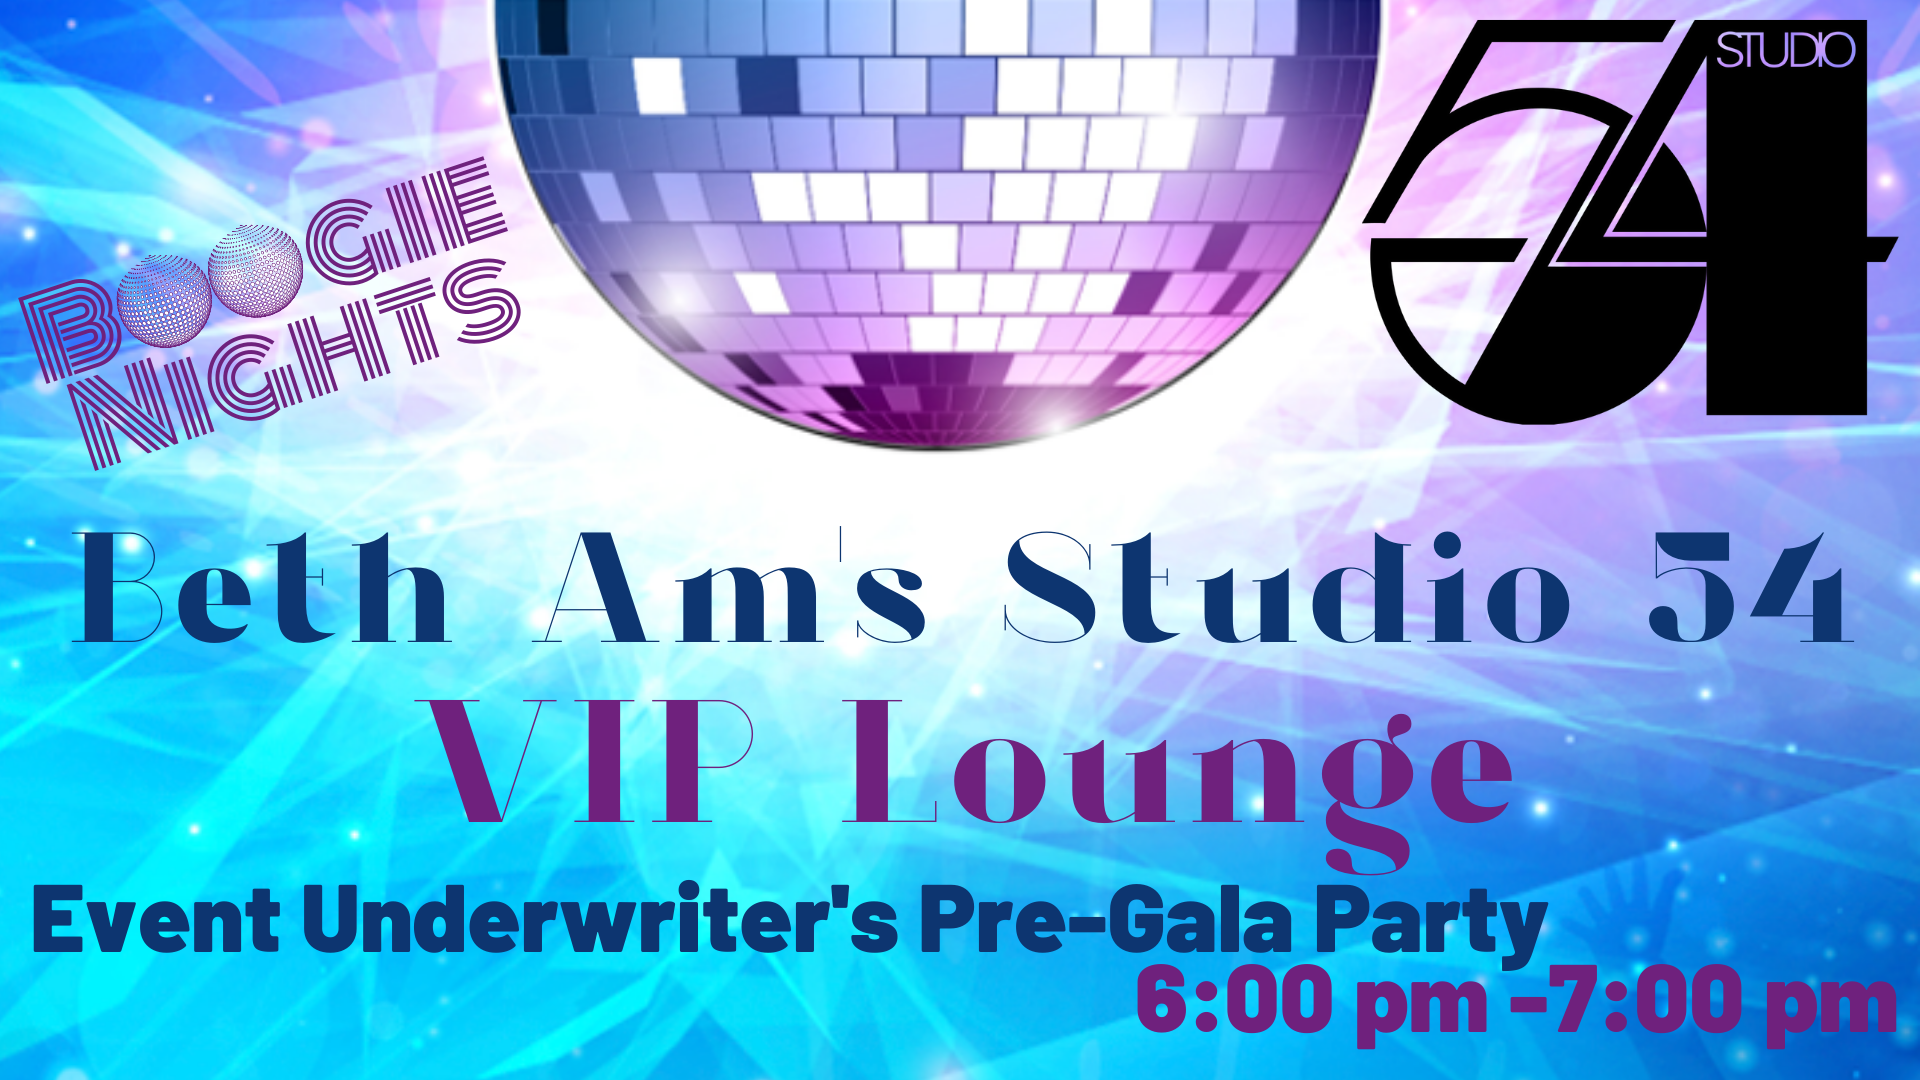 Banner Image for Beth Am Studio 54 - VIP Lounge